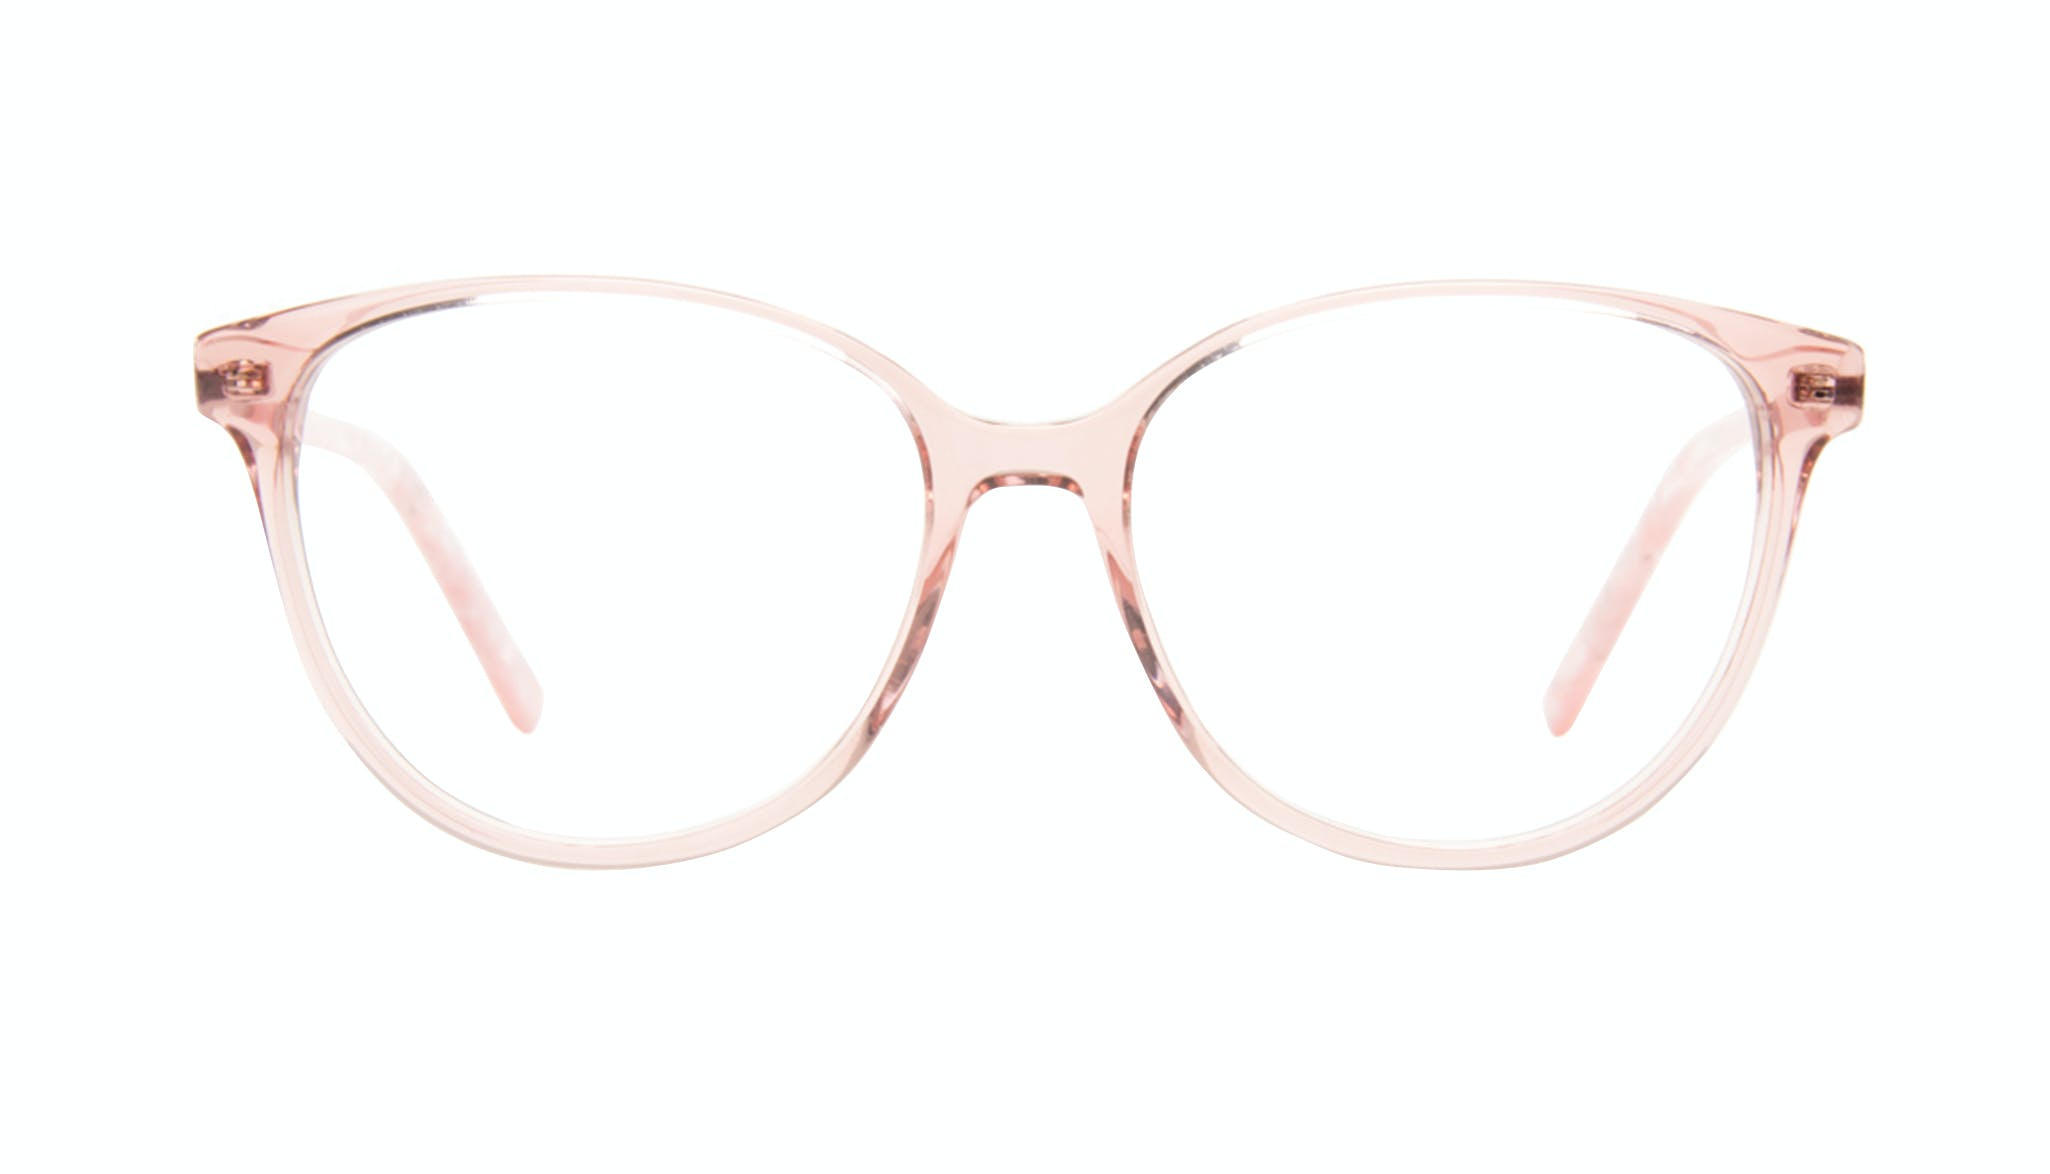 Affordable Fashion Glasses Round Eyeglasses Women Imagine II Rose Marble Front